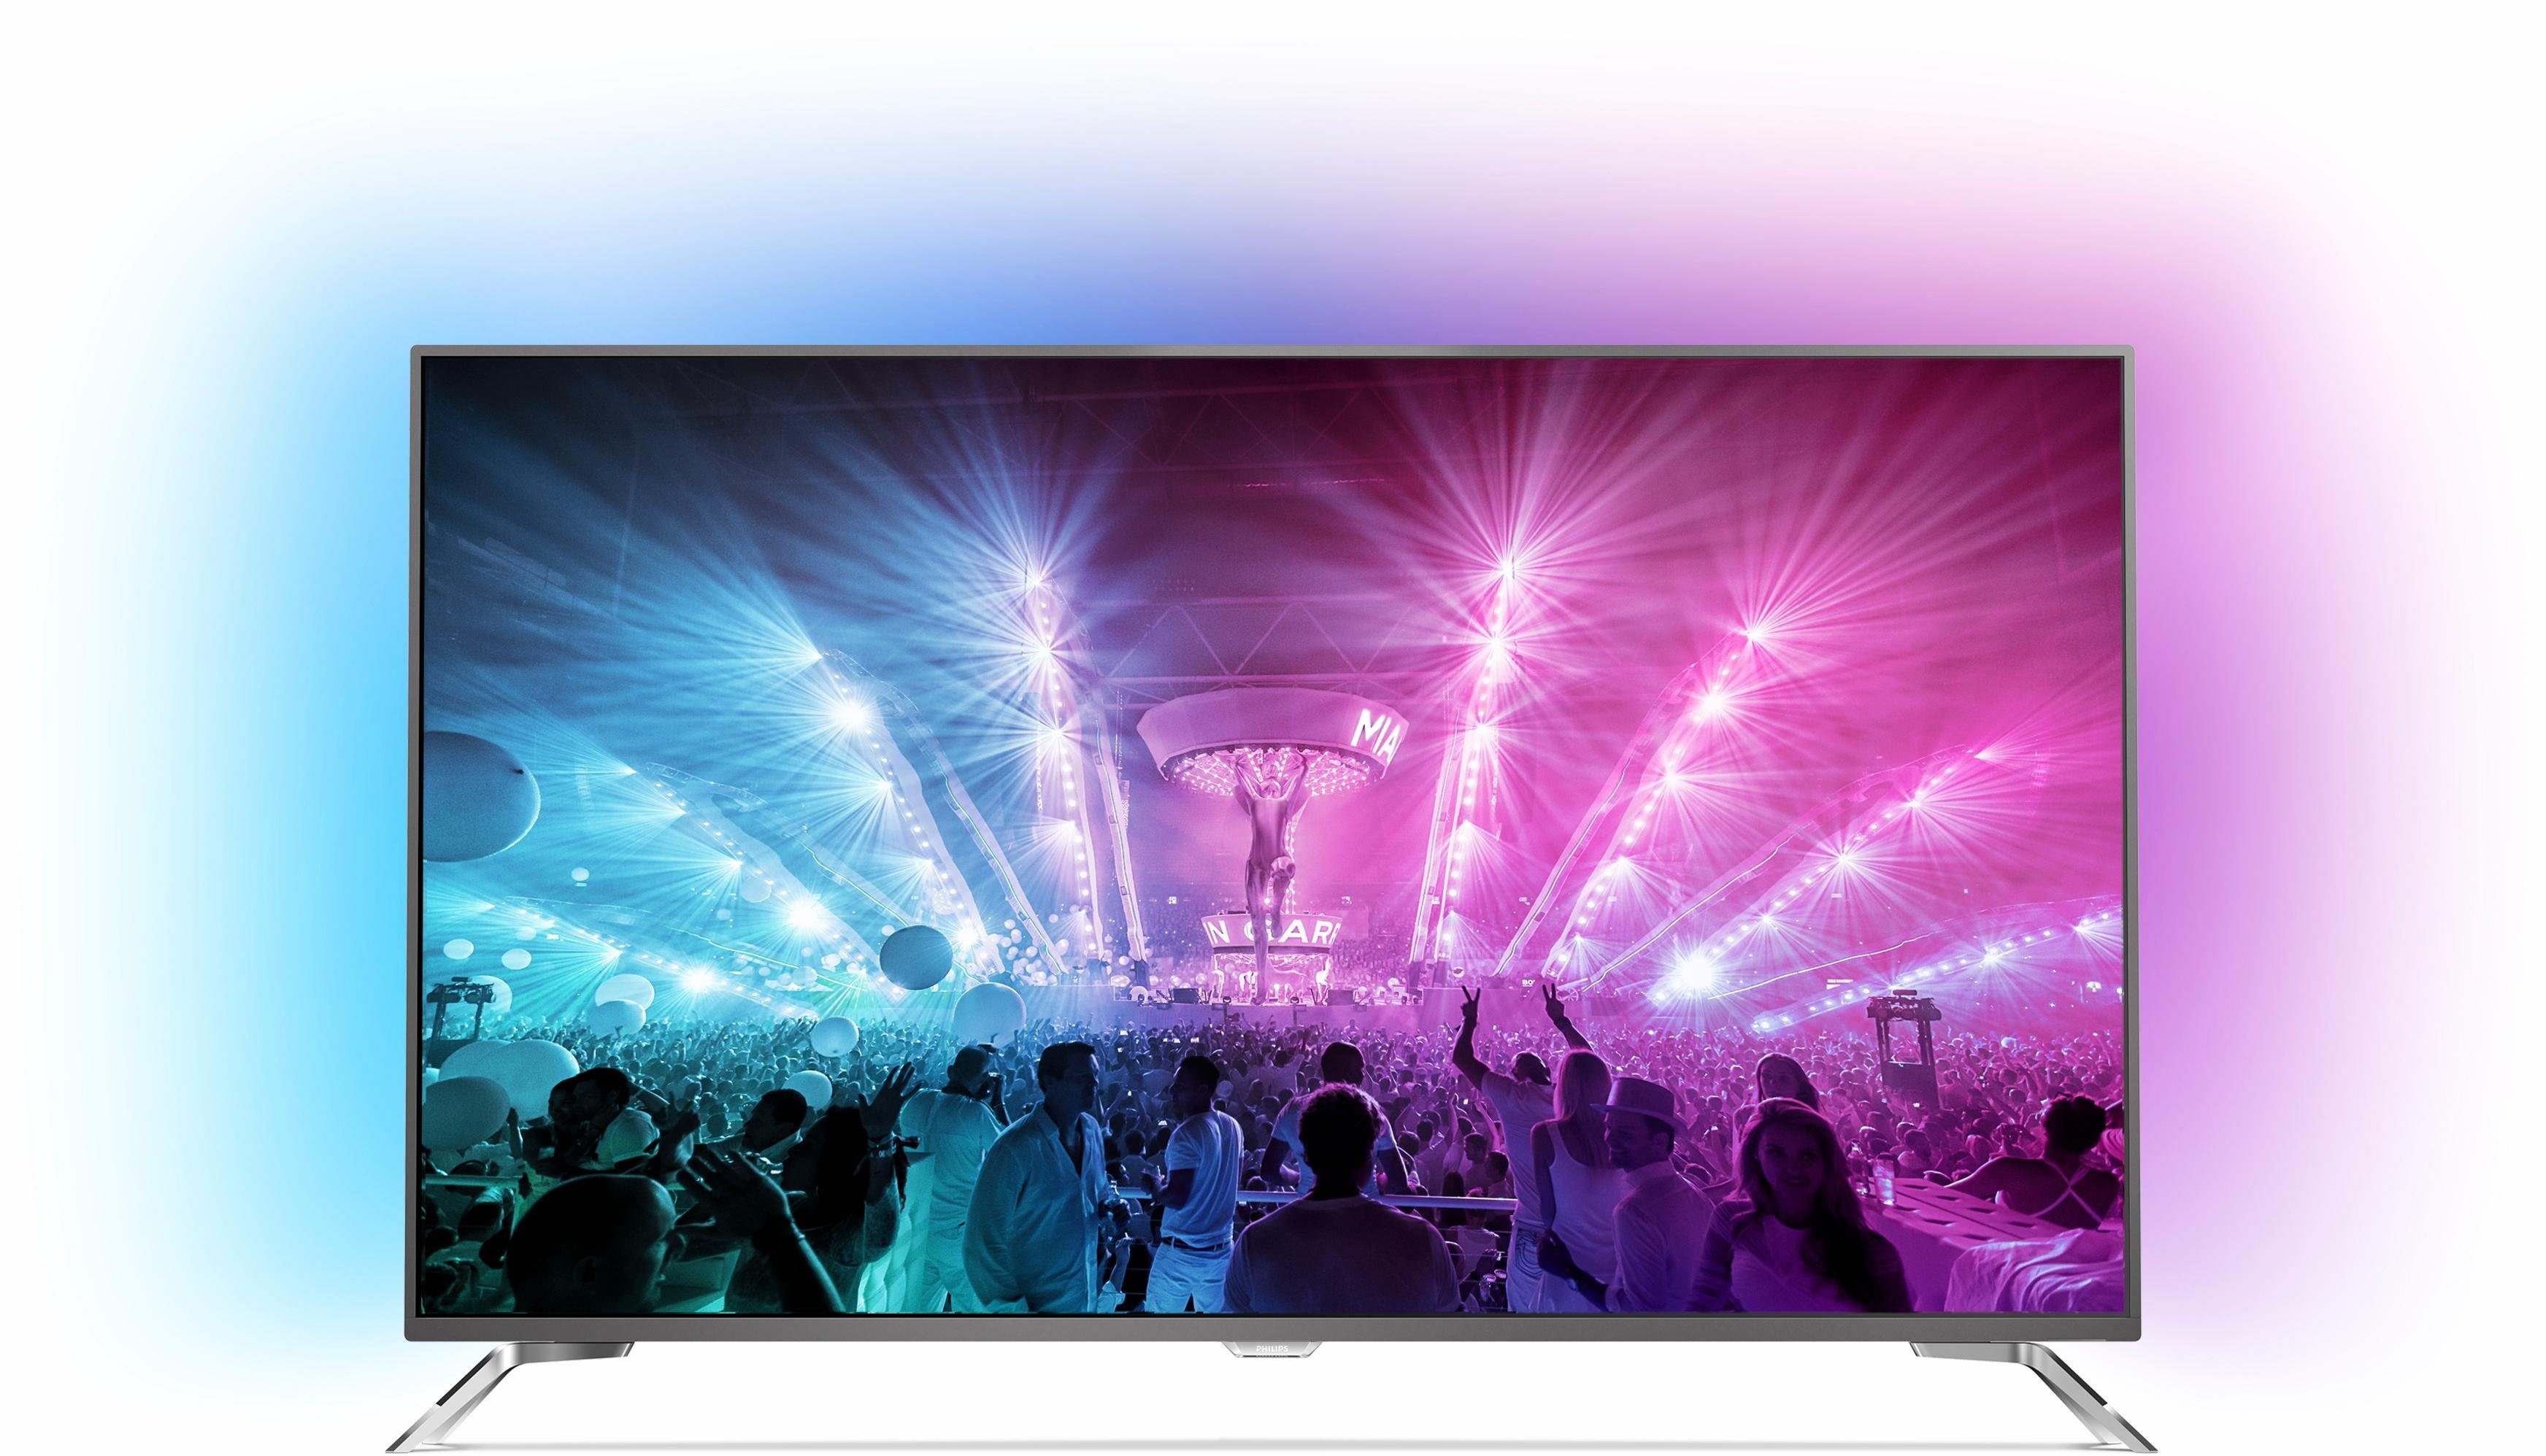 Philips 65PUS7101/12, LED Fernseher, 164 cm (65 Zoll), 2160p (4K Ultra HD) Ambilight, Smart-TV